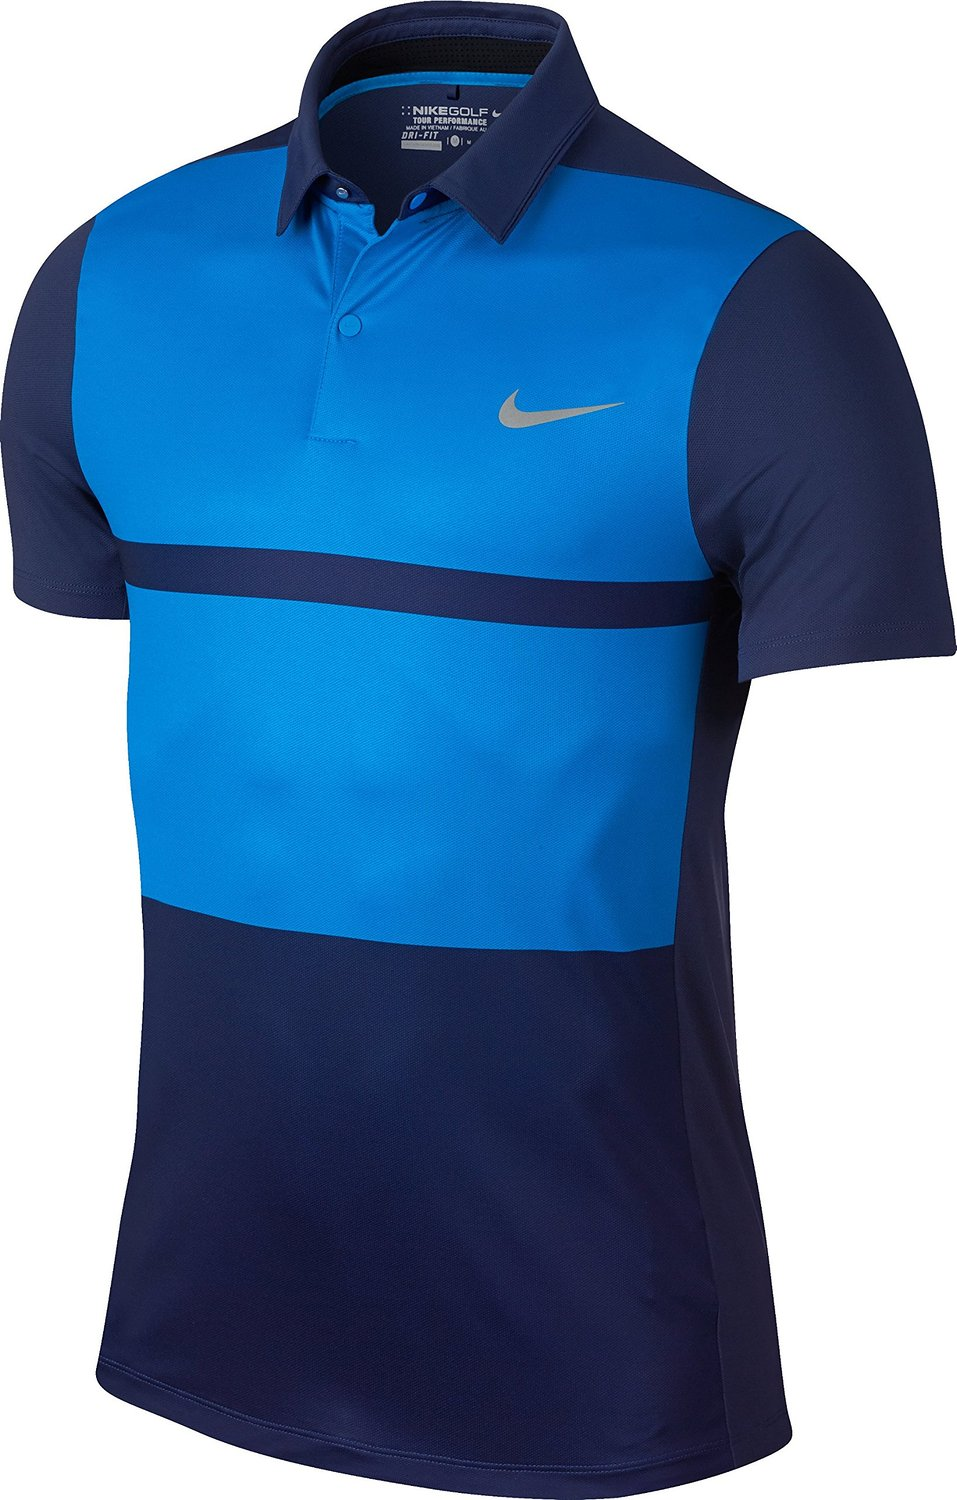 68d6e46d5 Get Quotations · Nike Golf Momentum Fly Framing Block Polo (Midnight  Navy Photo Blue Flat Silver